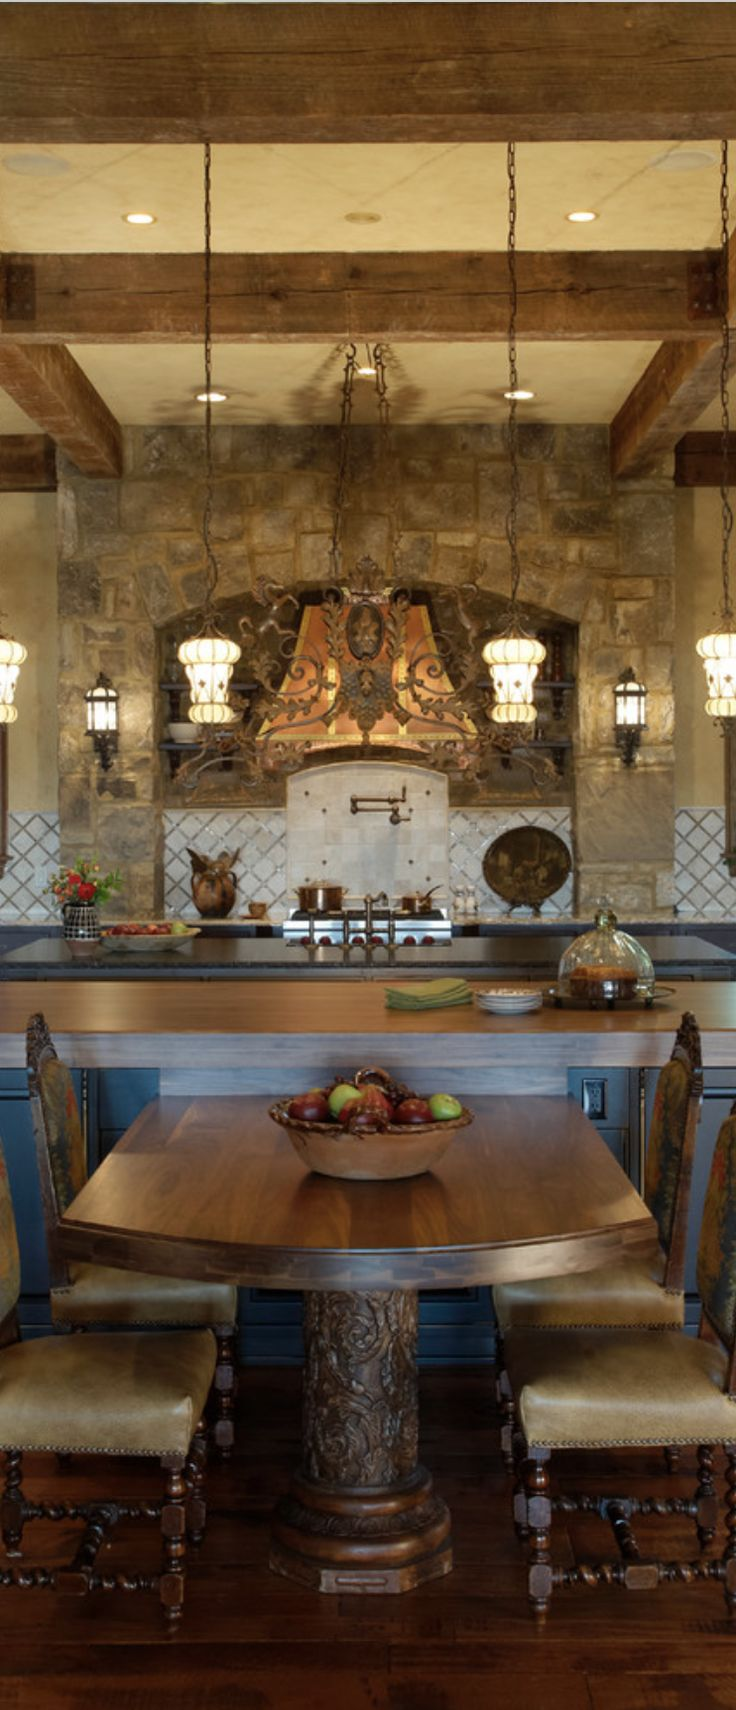 Old World Kitchen Design 17 Best Ideas About Old World Kitchens On Pinterest Old World